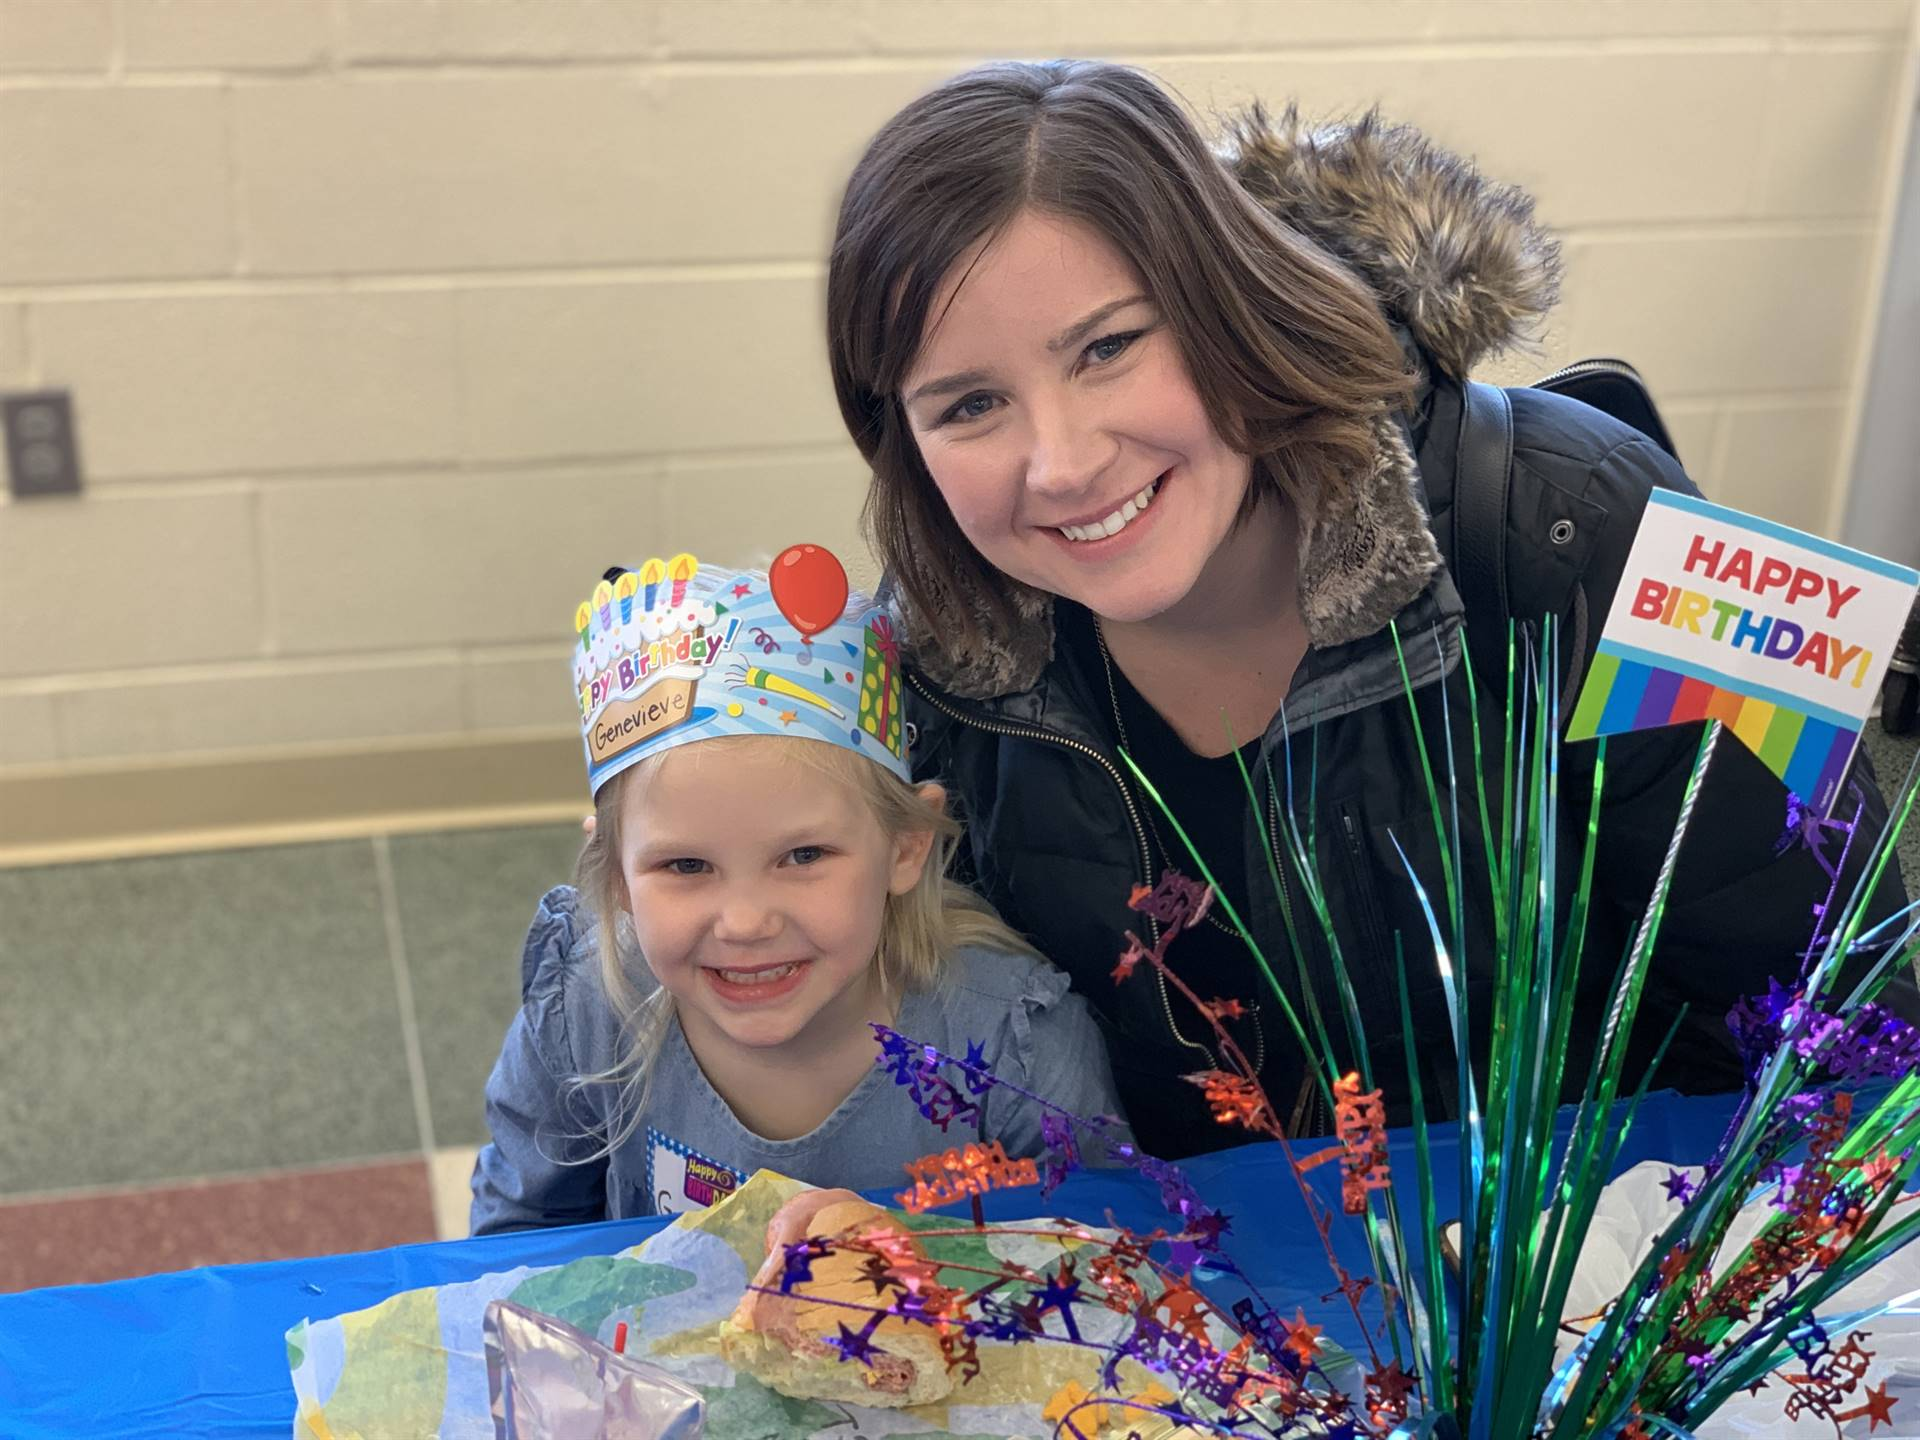 A mom and her daughter enjoy Birthday Lunch